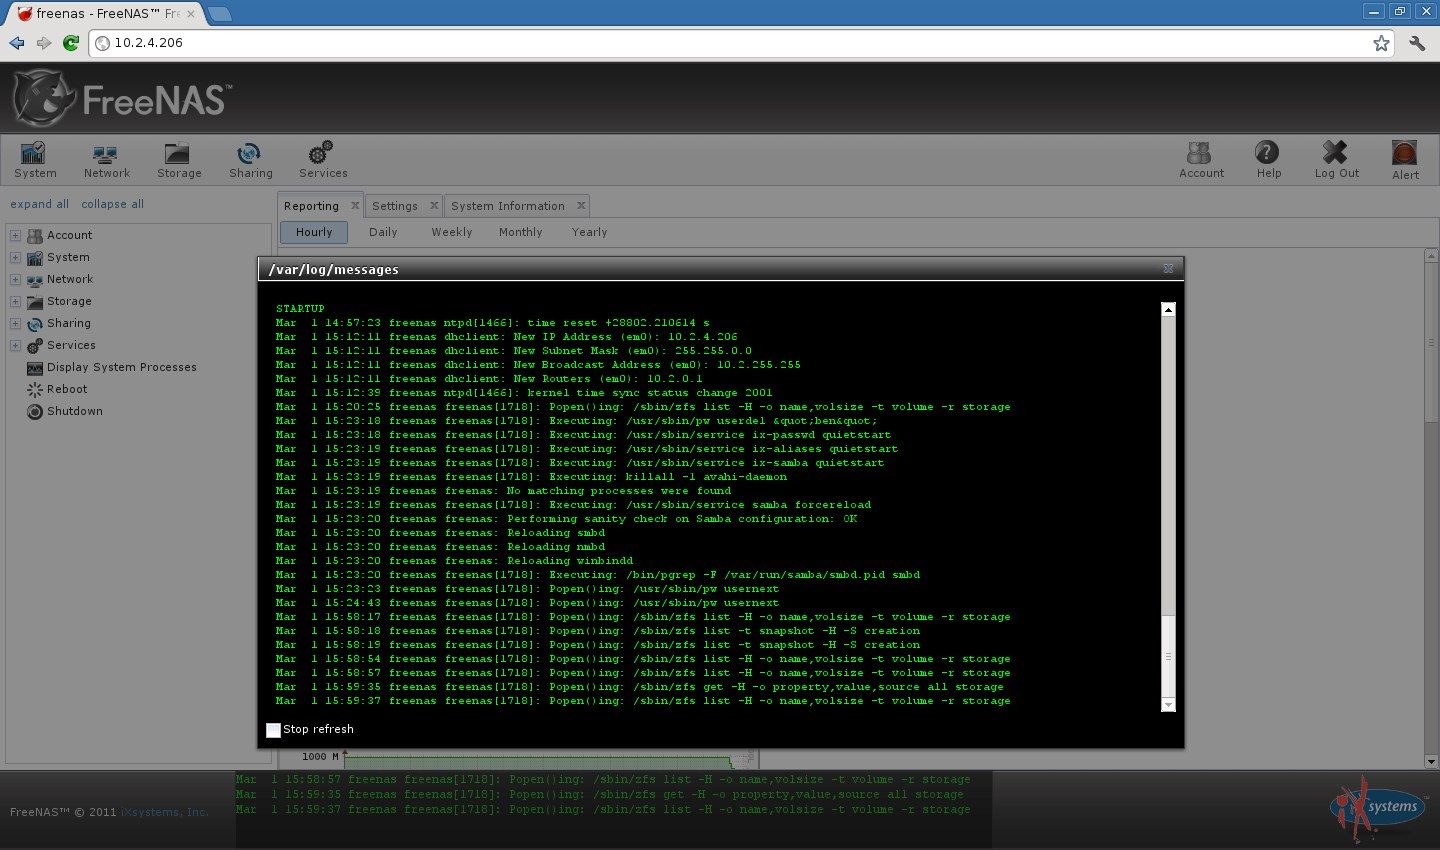 FreeNAS screenshot 1